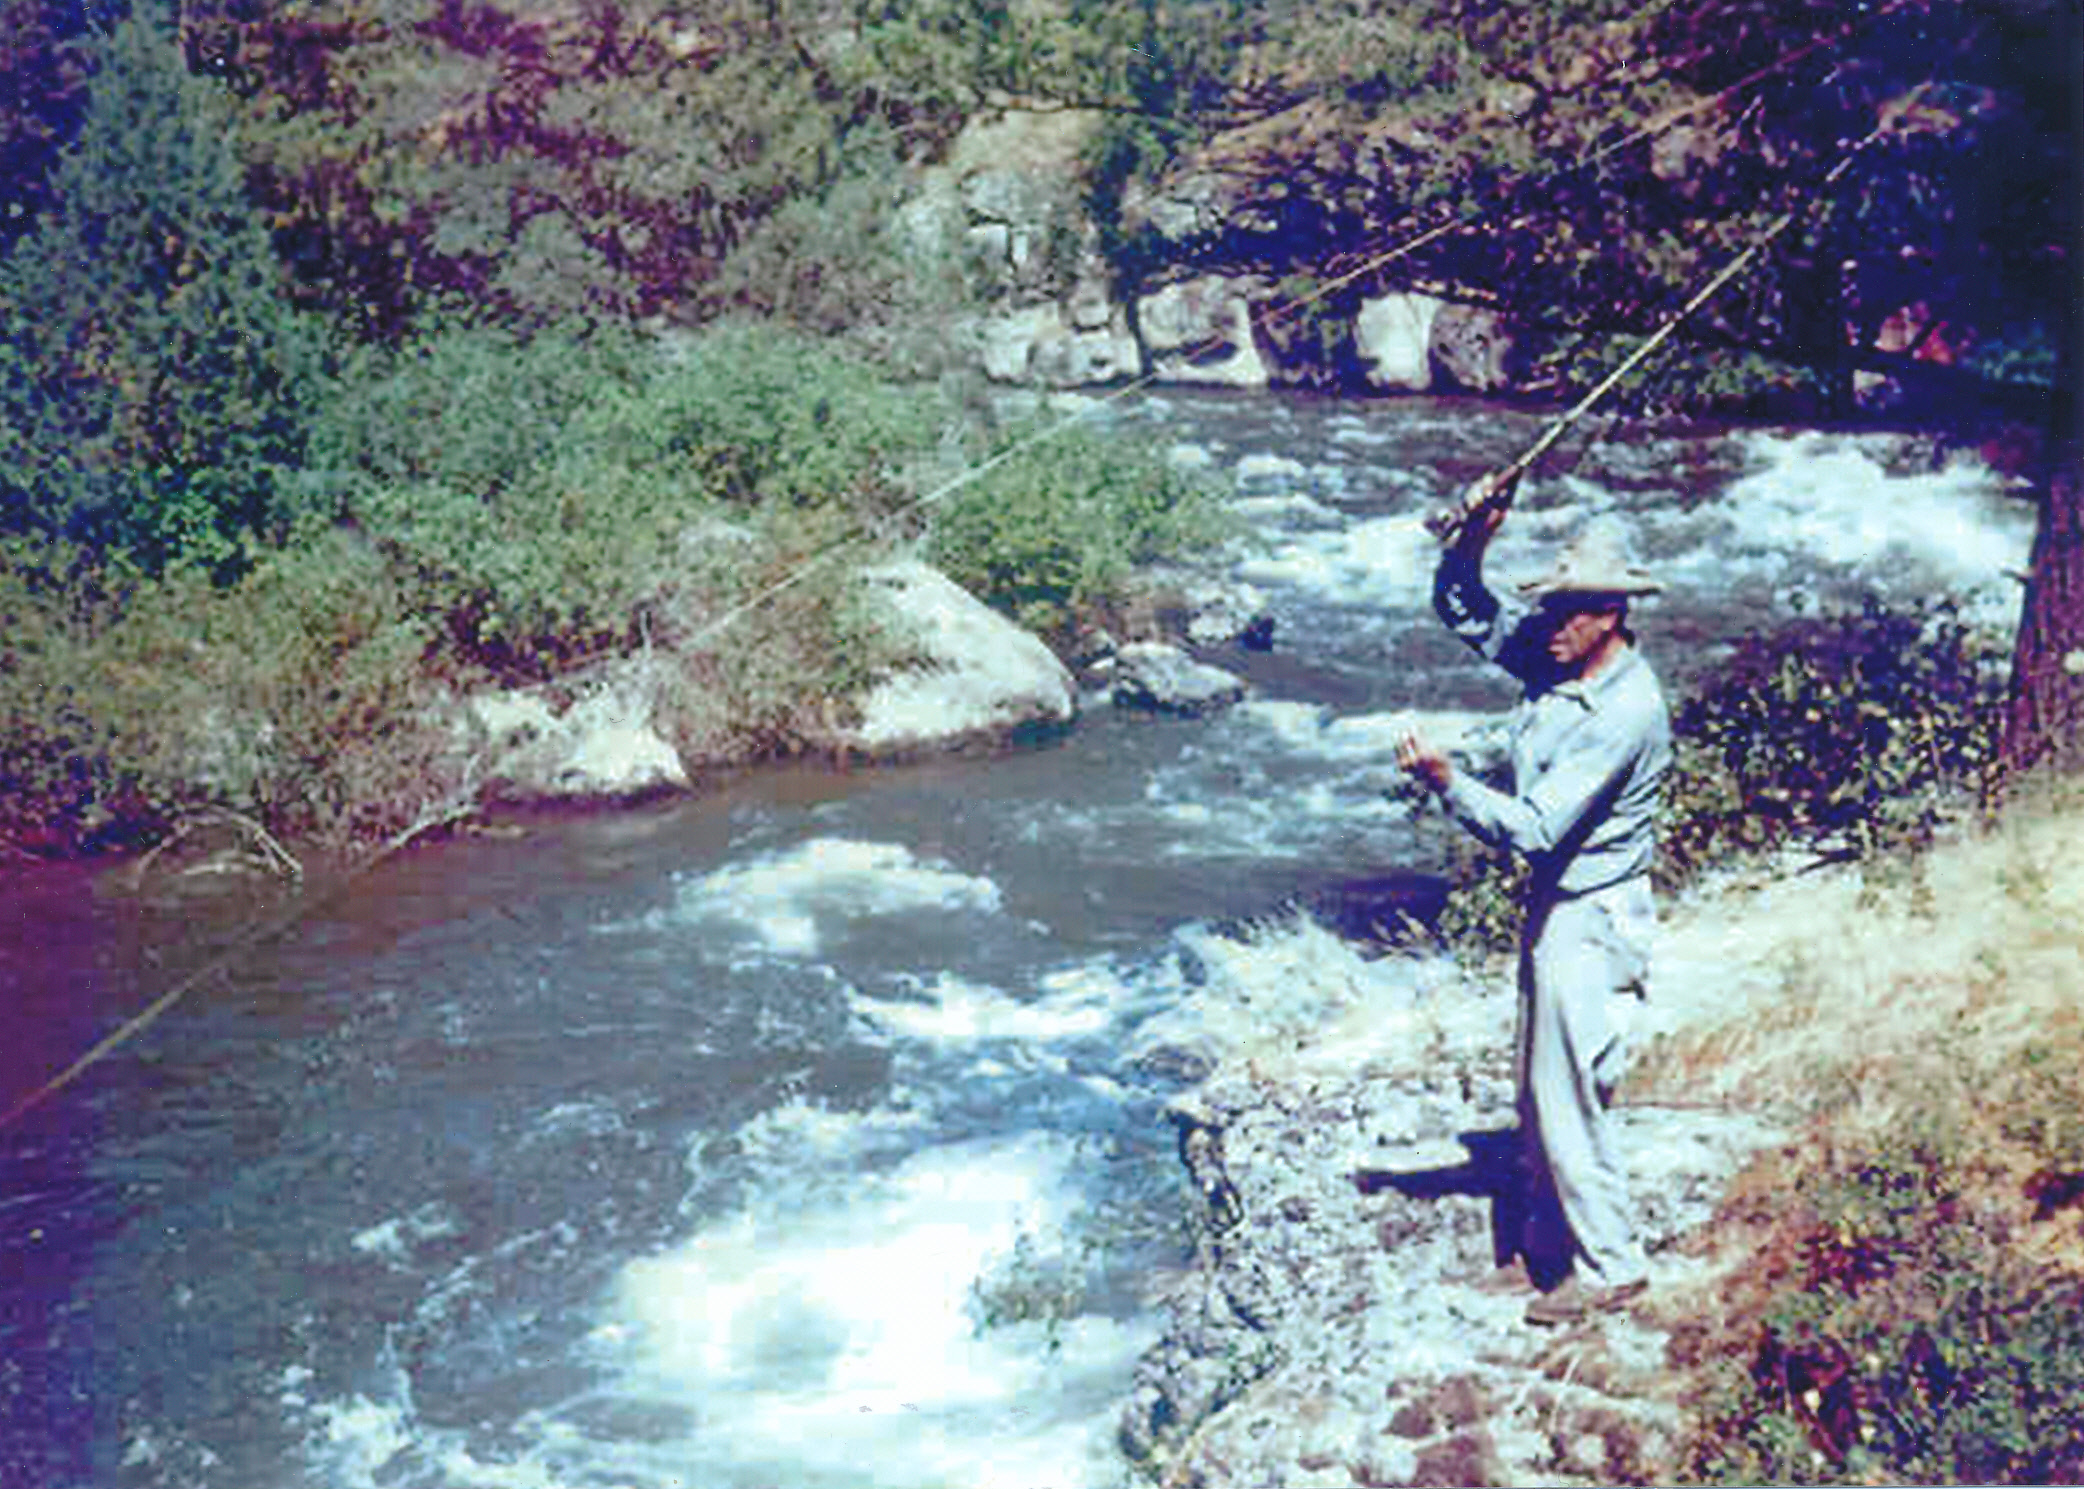 Henry Nelson fishing at The Ledges, 1970